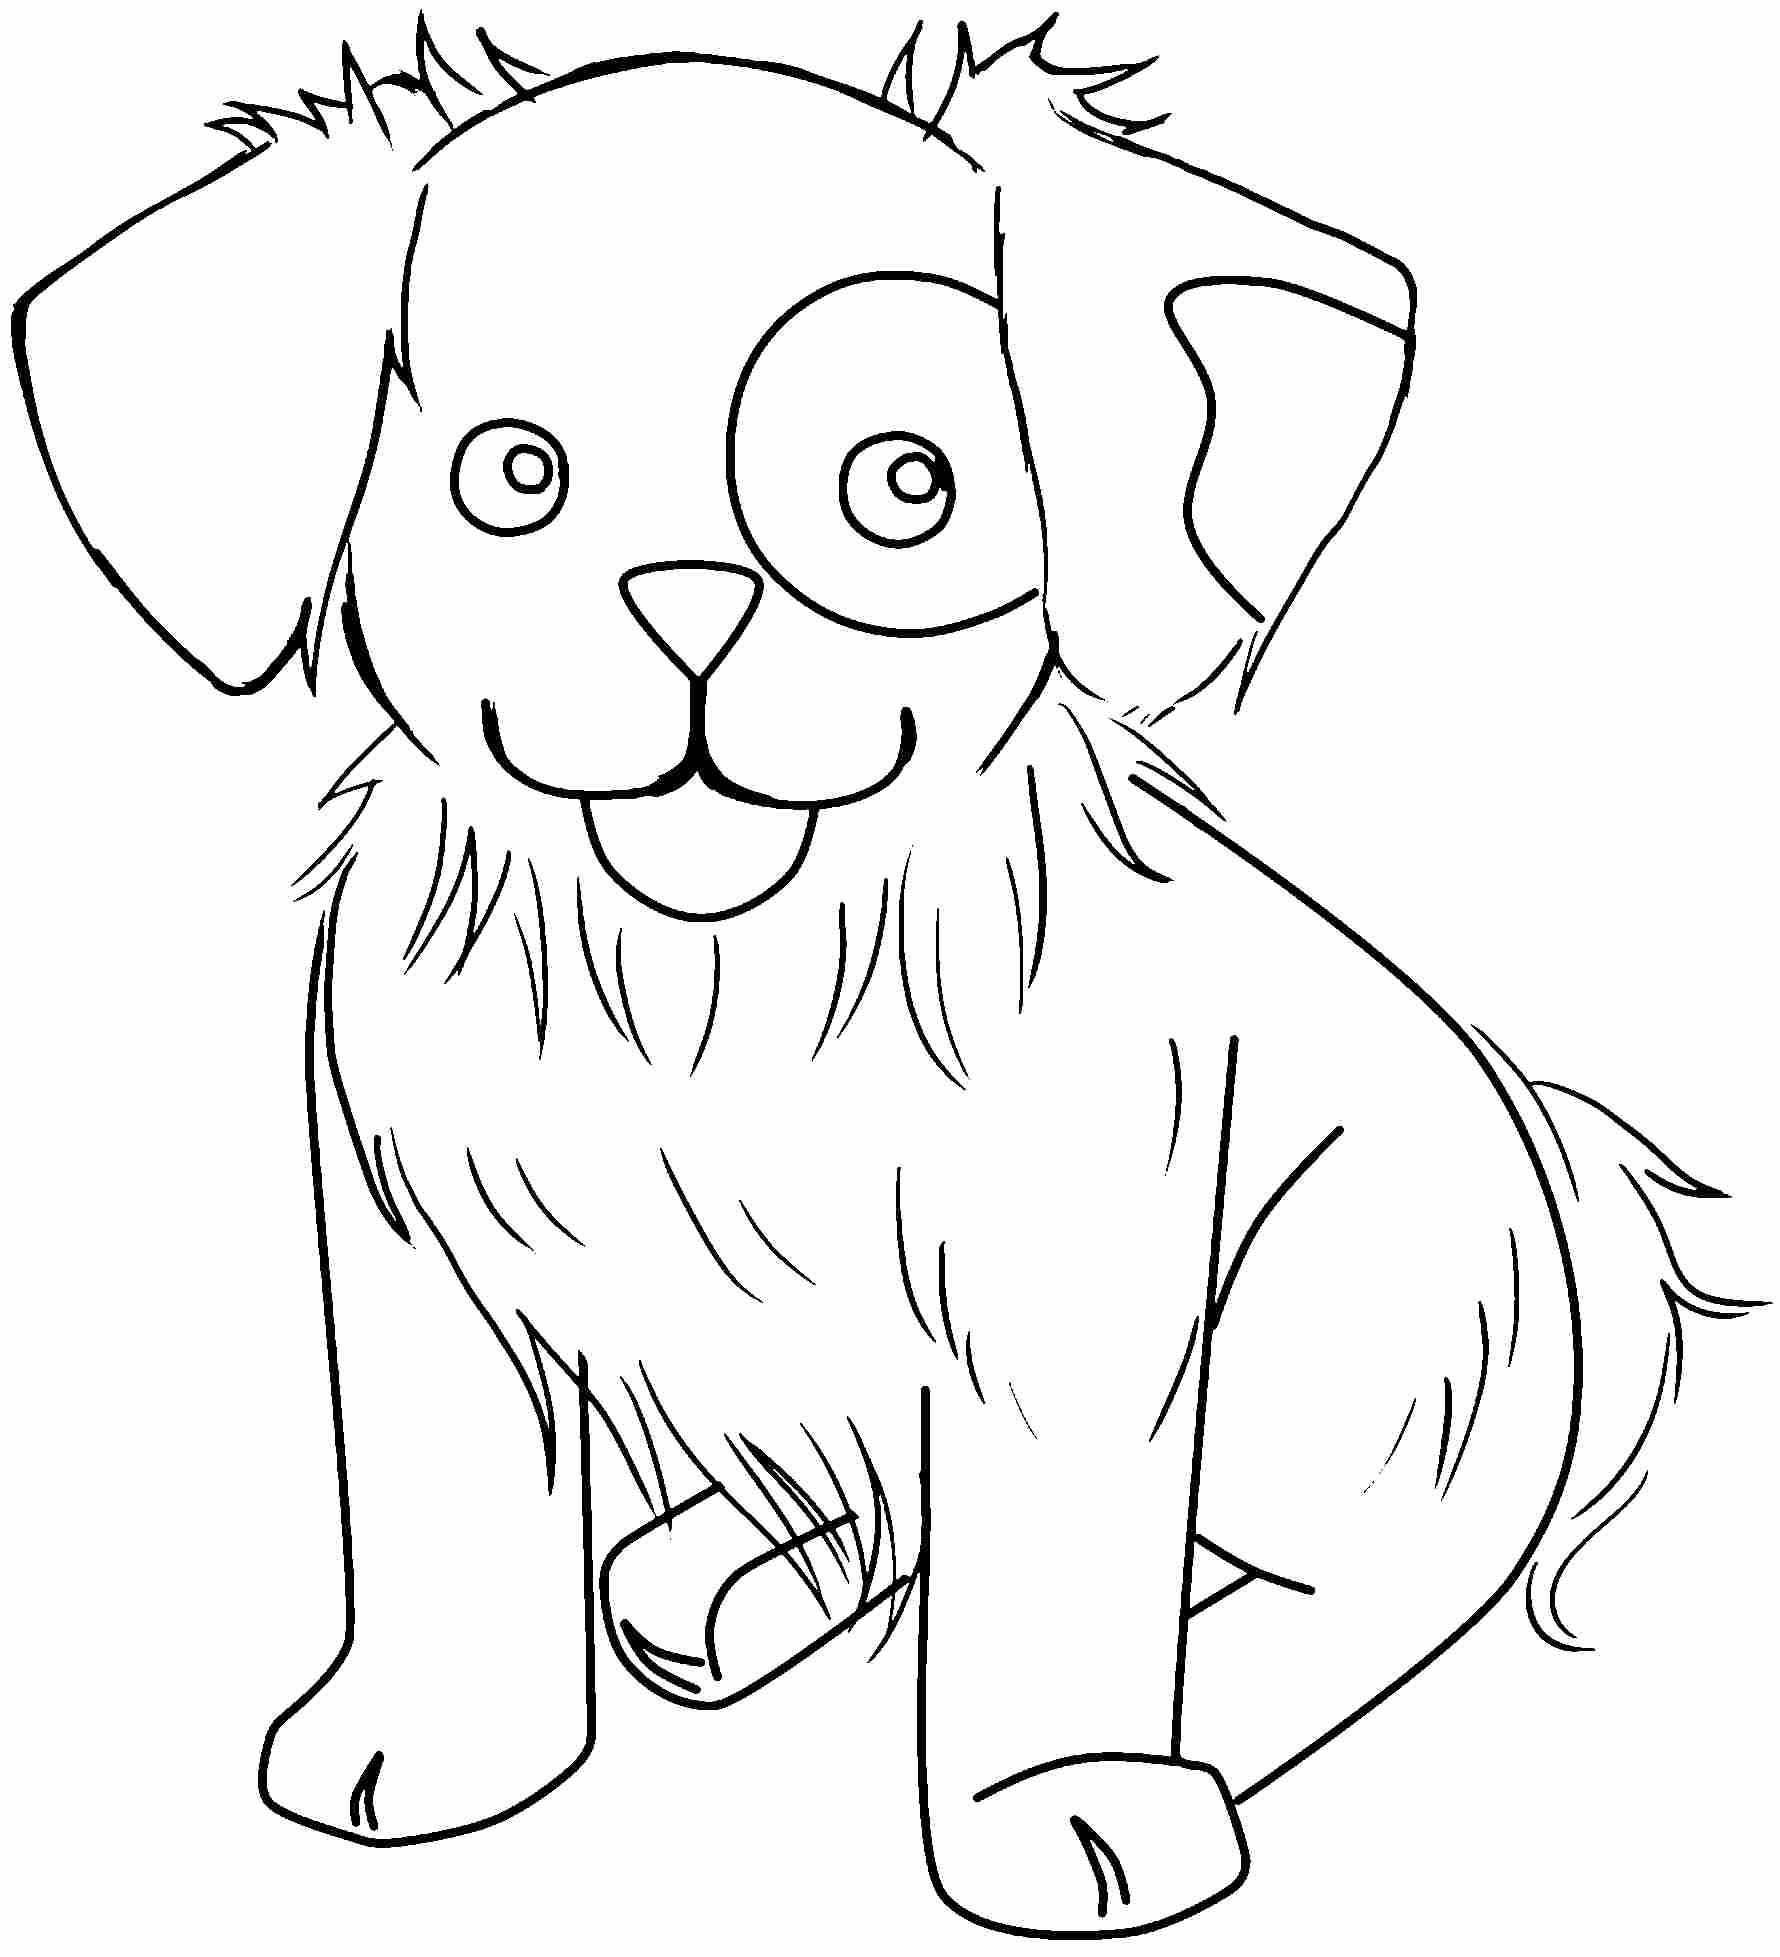 Printable Pictures Of Animals Unique Free Printable Cute Animal Coloring Pages Coloring Home